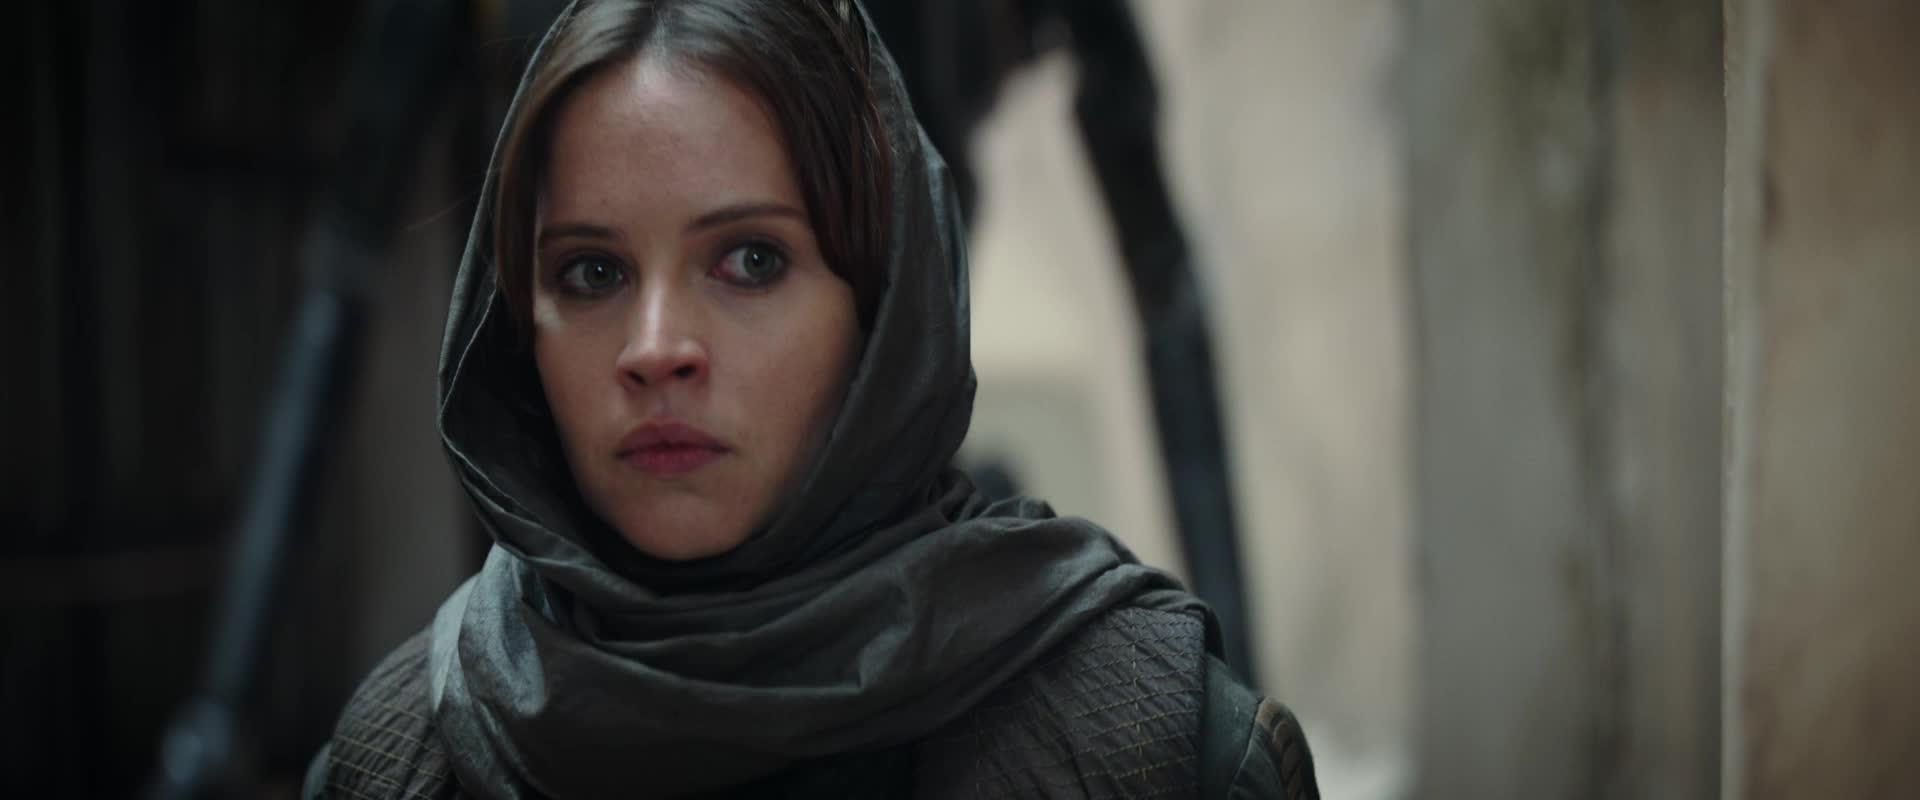 Rogue One: O poveste Star Wars - trailer 1